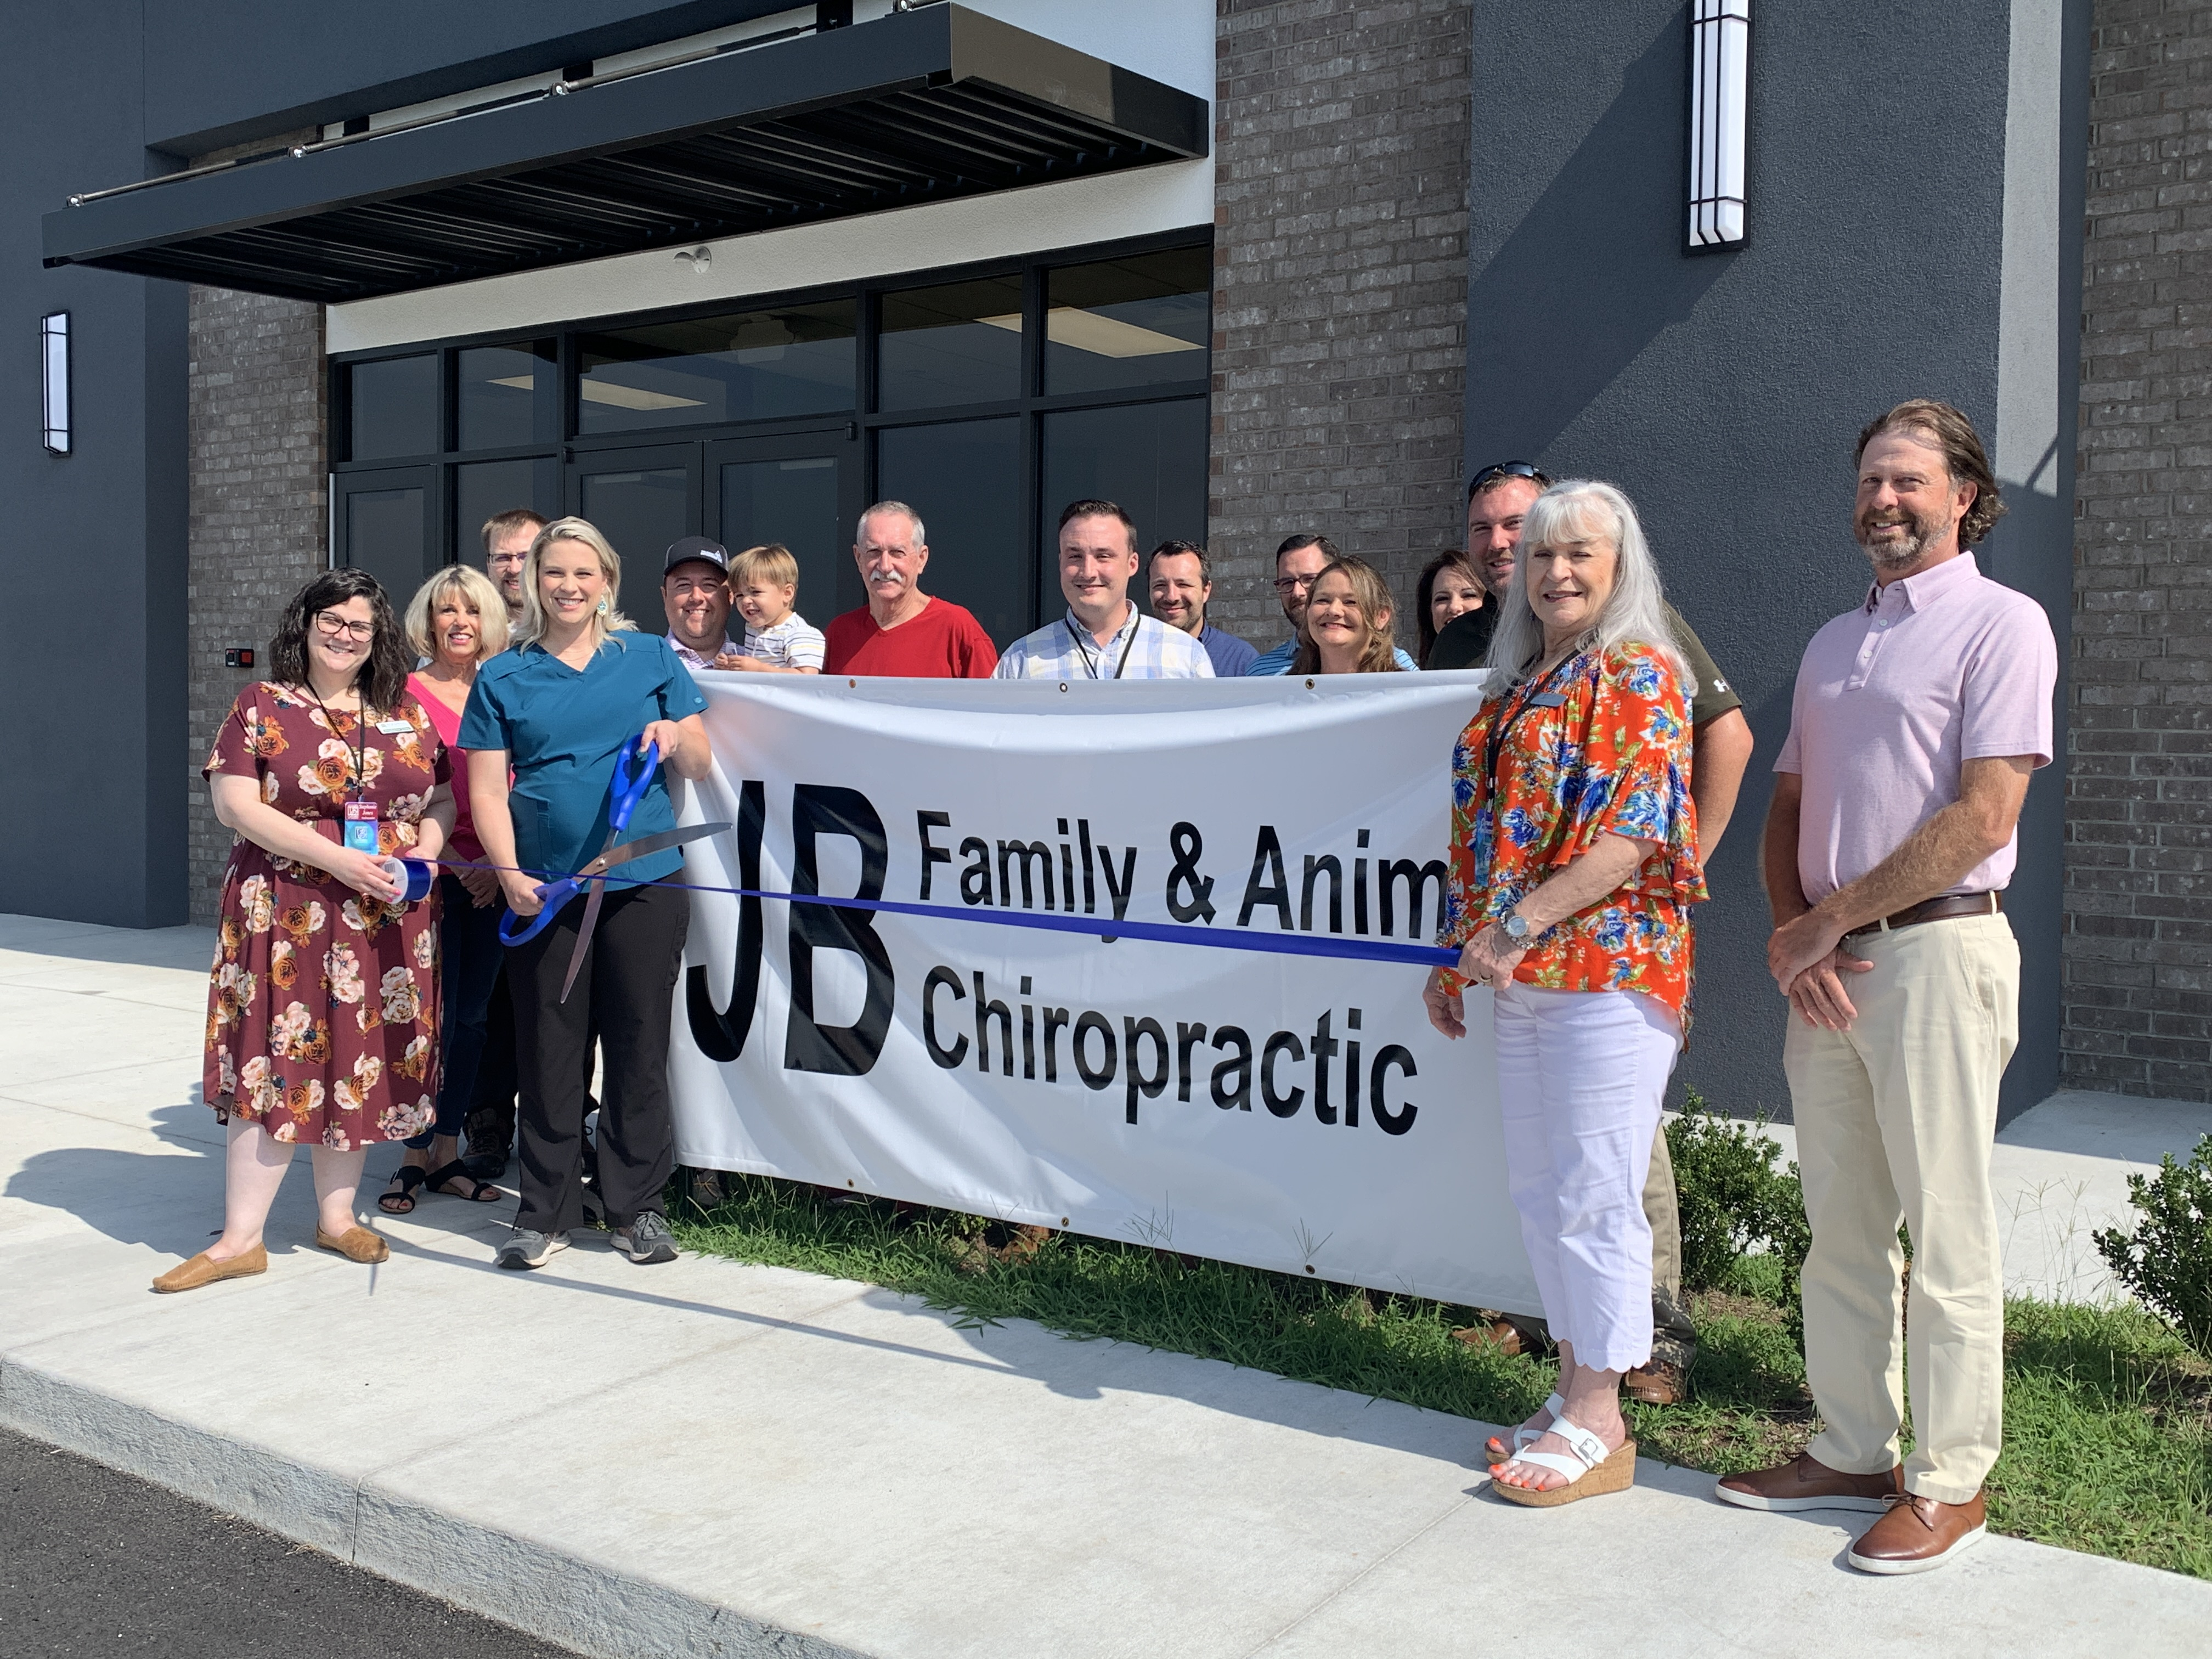 Scenes from the Ribbon Cutting for JB Family & Animal Chiropractic